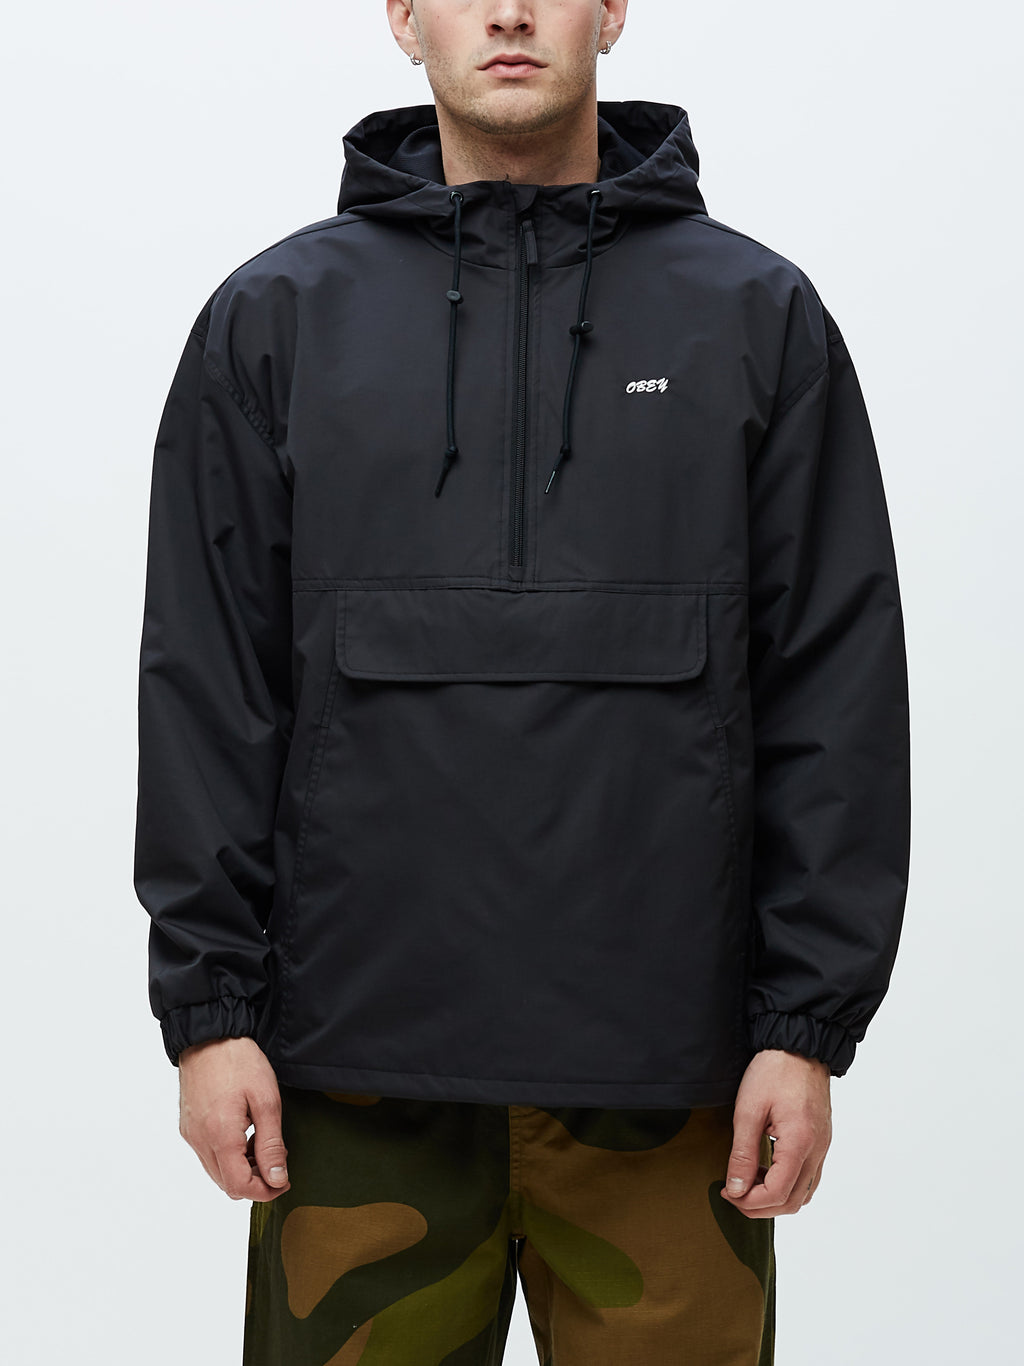 OBEY - Recess Men's Anorak Jacket, Black